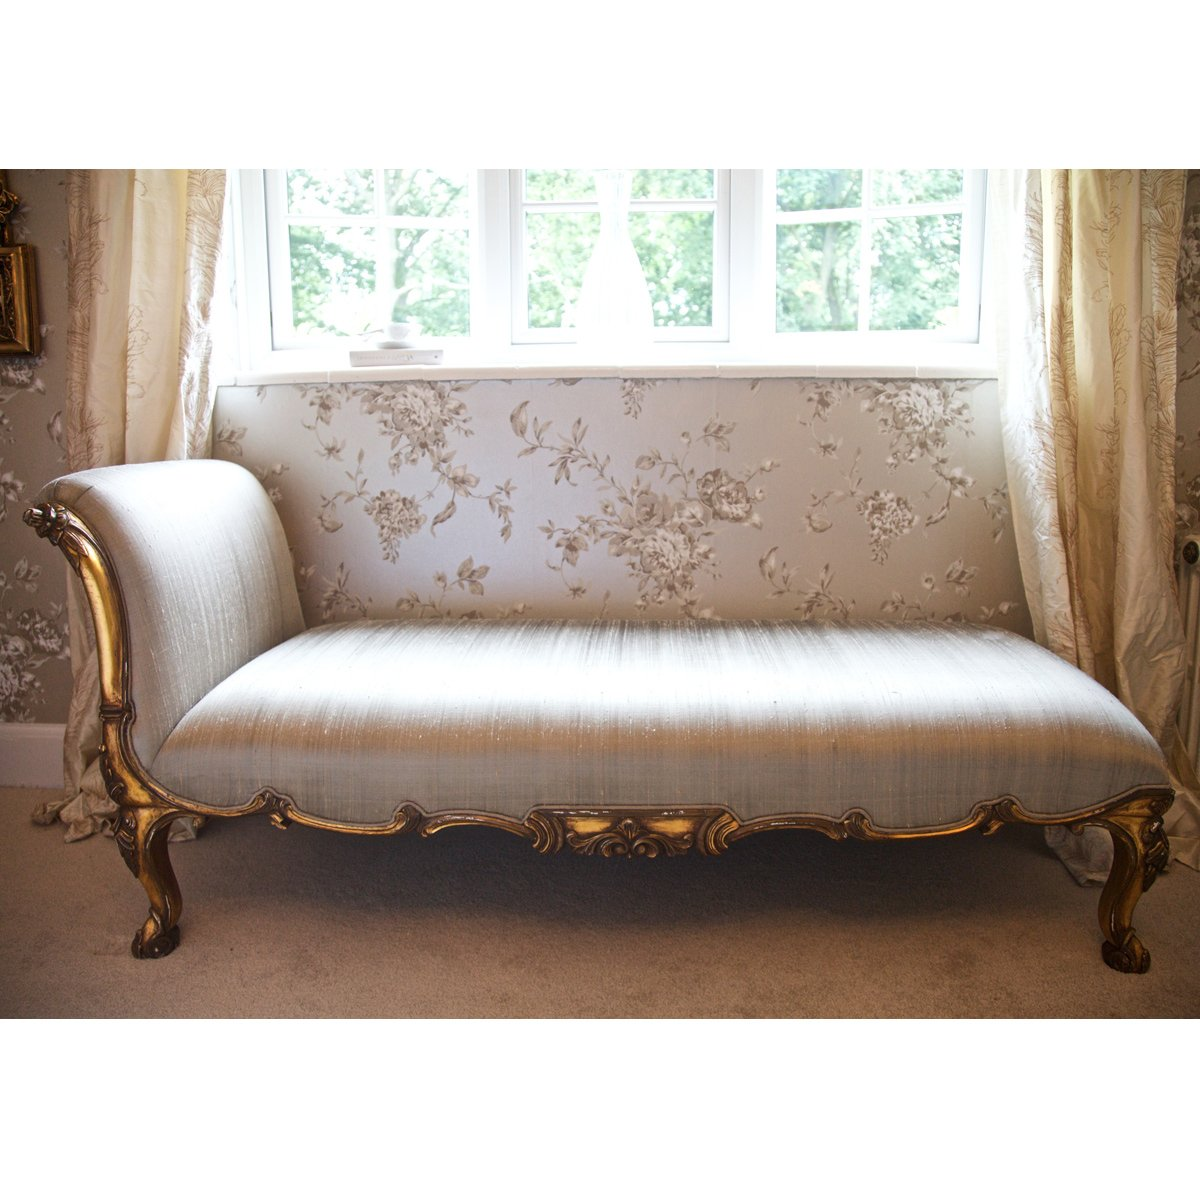 Versailles gold chaise longue french bedroom company for Bedroom chaise lounges